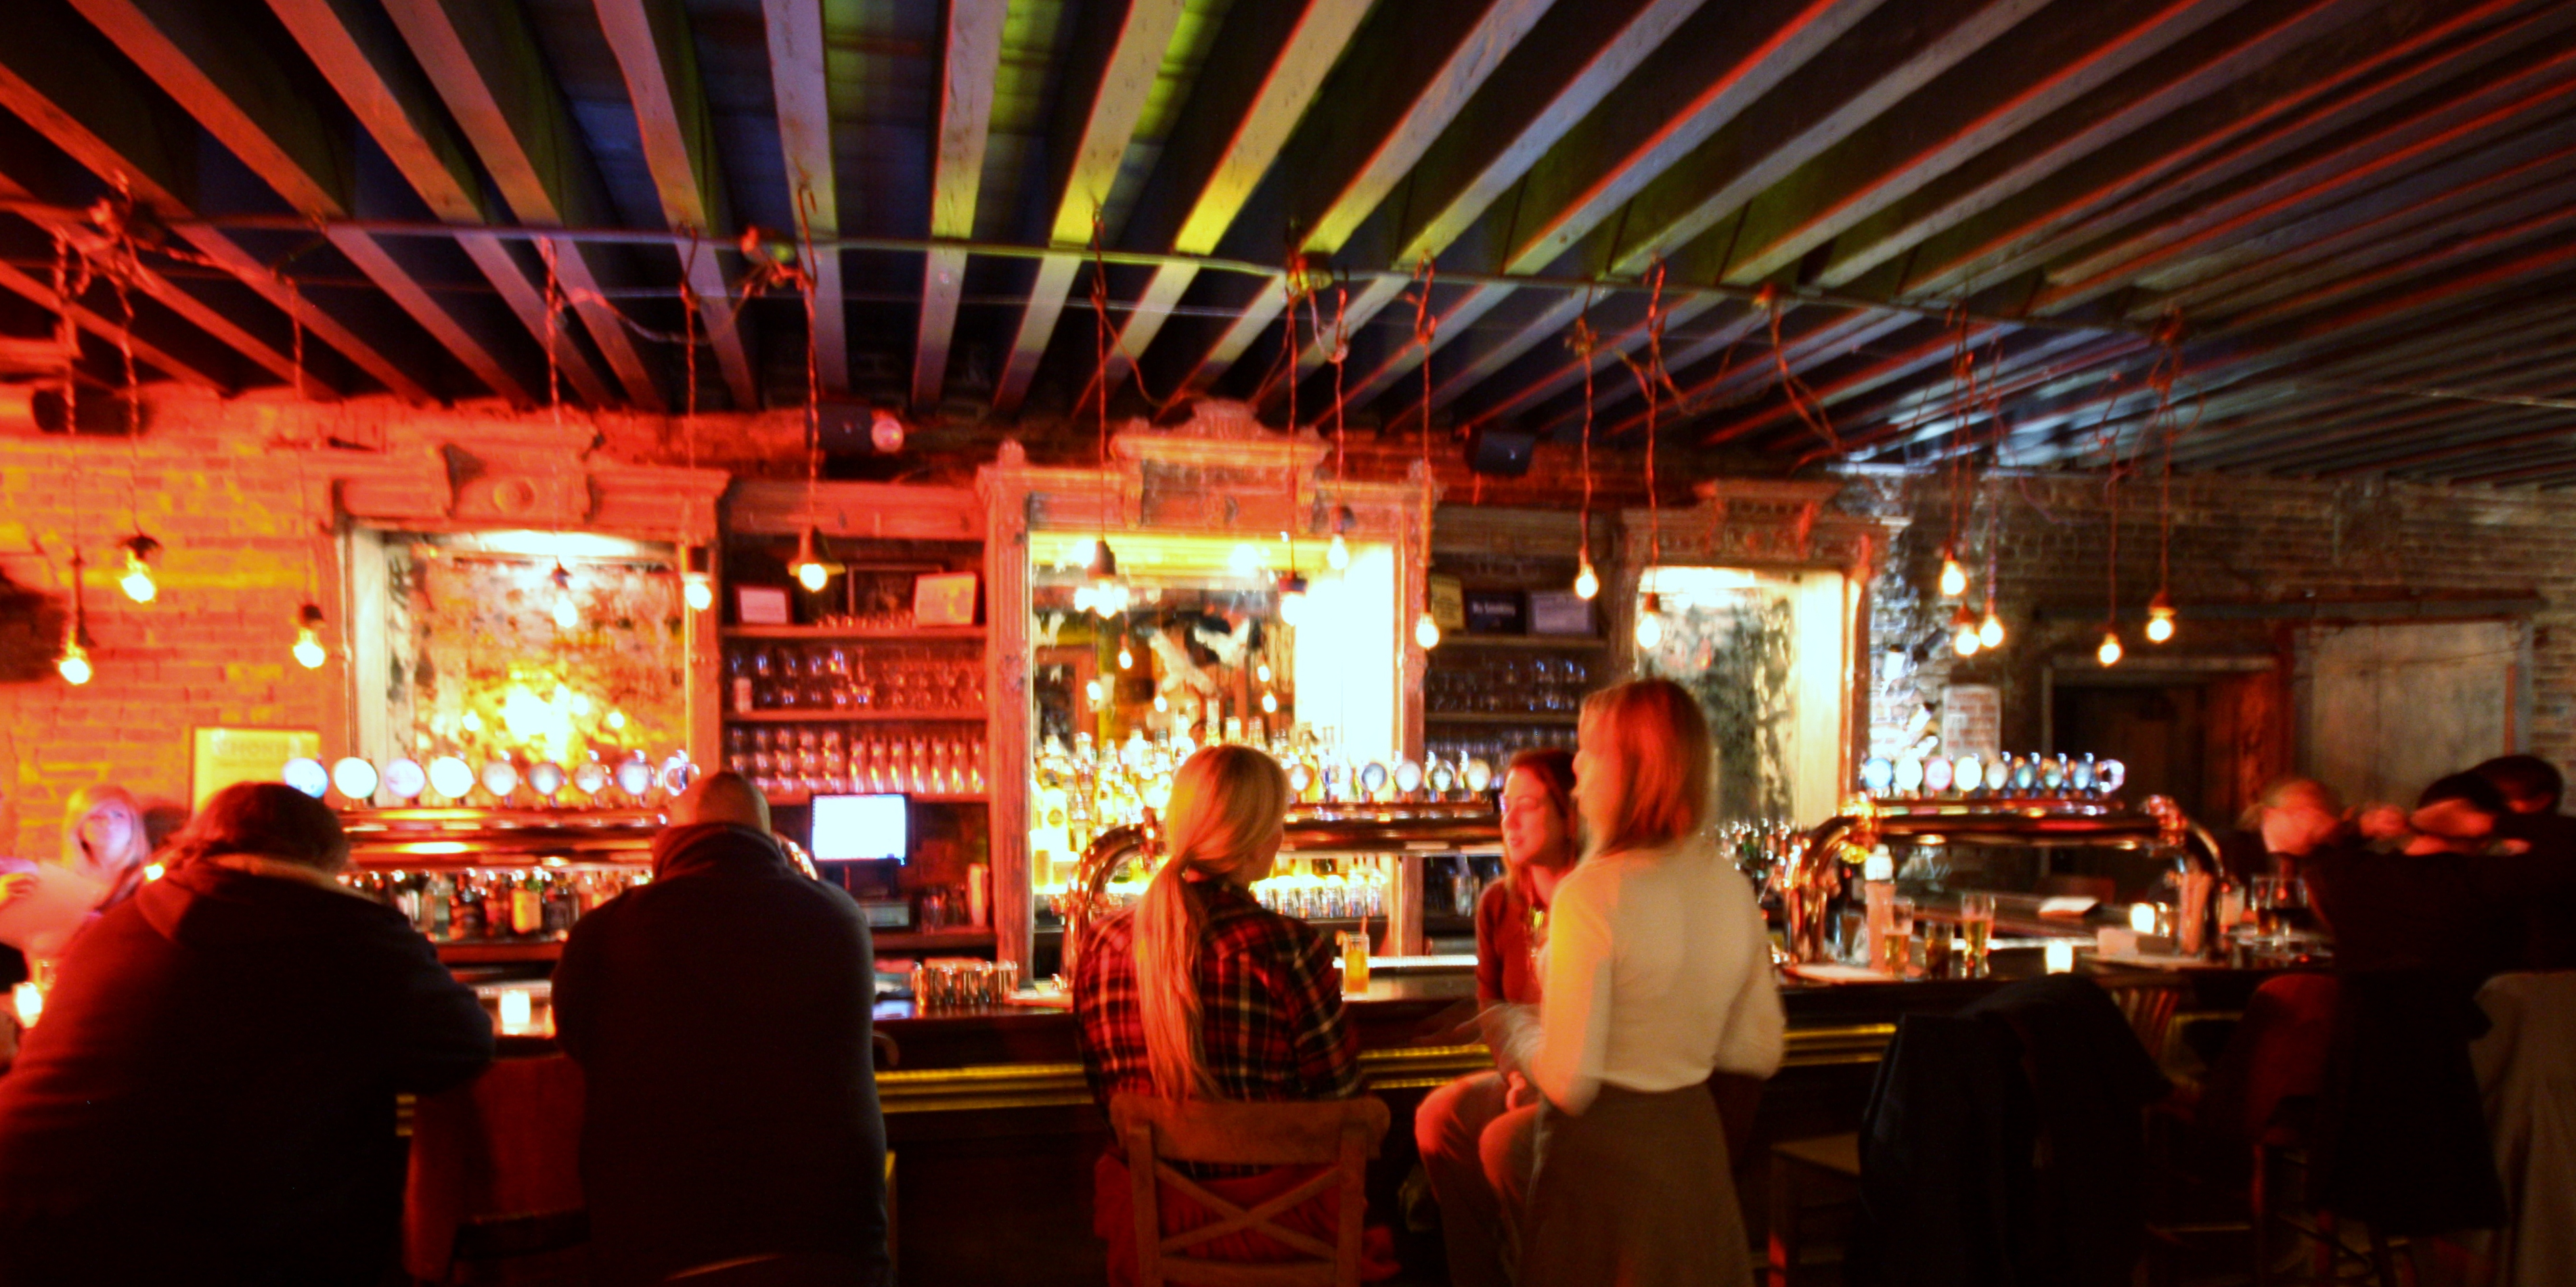 Irish Pubs Global The Network For Owners And Managers Of